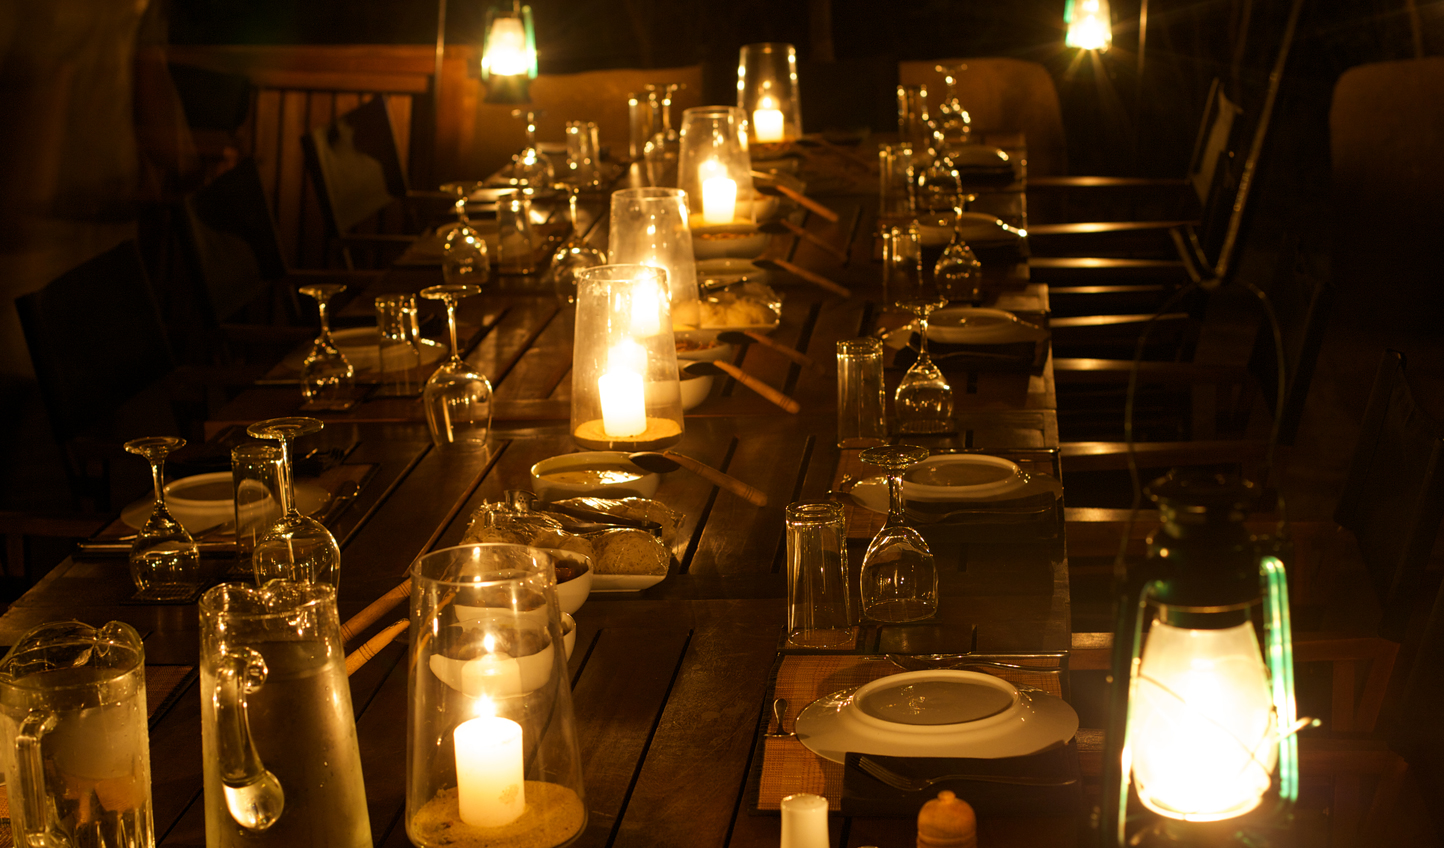 Enjoy authentic Sri Lankan cuisine by the candlelight